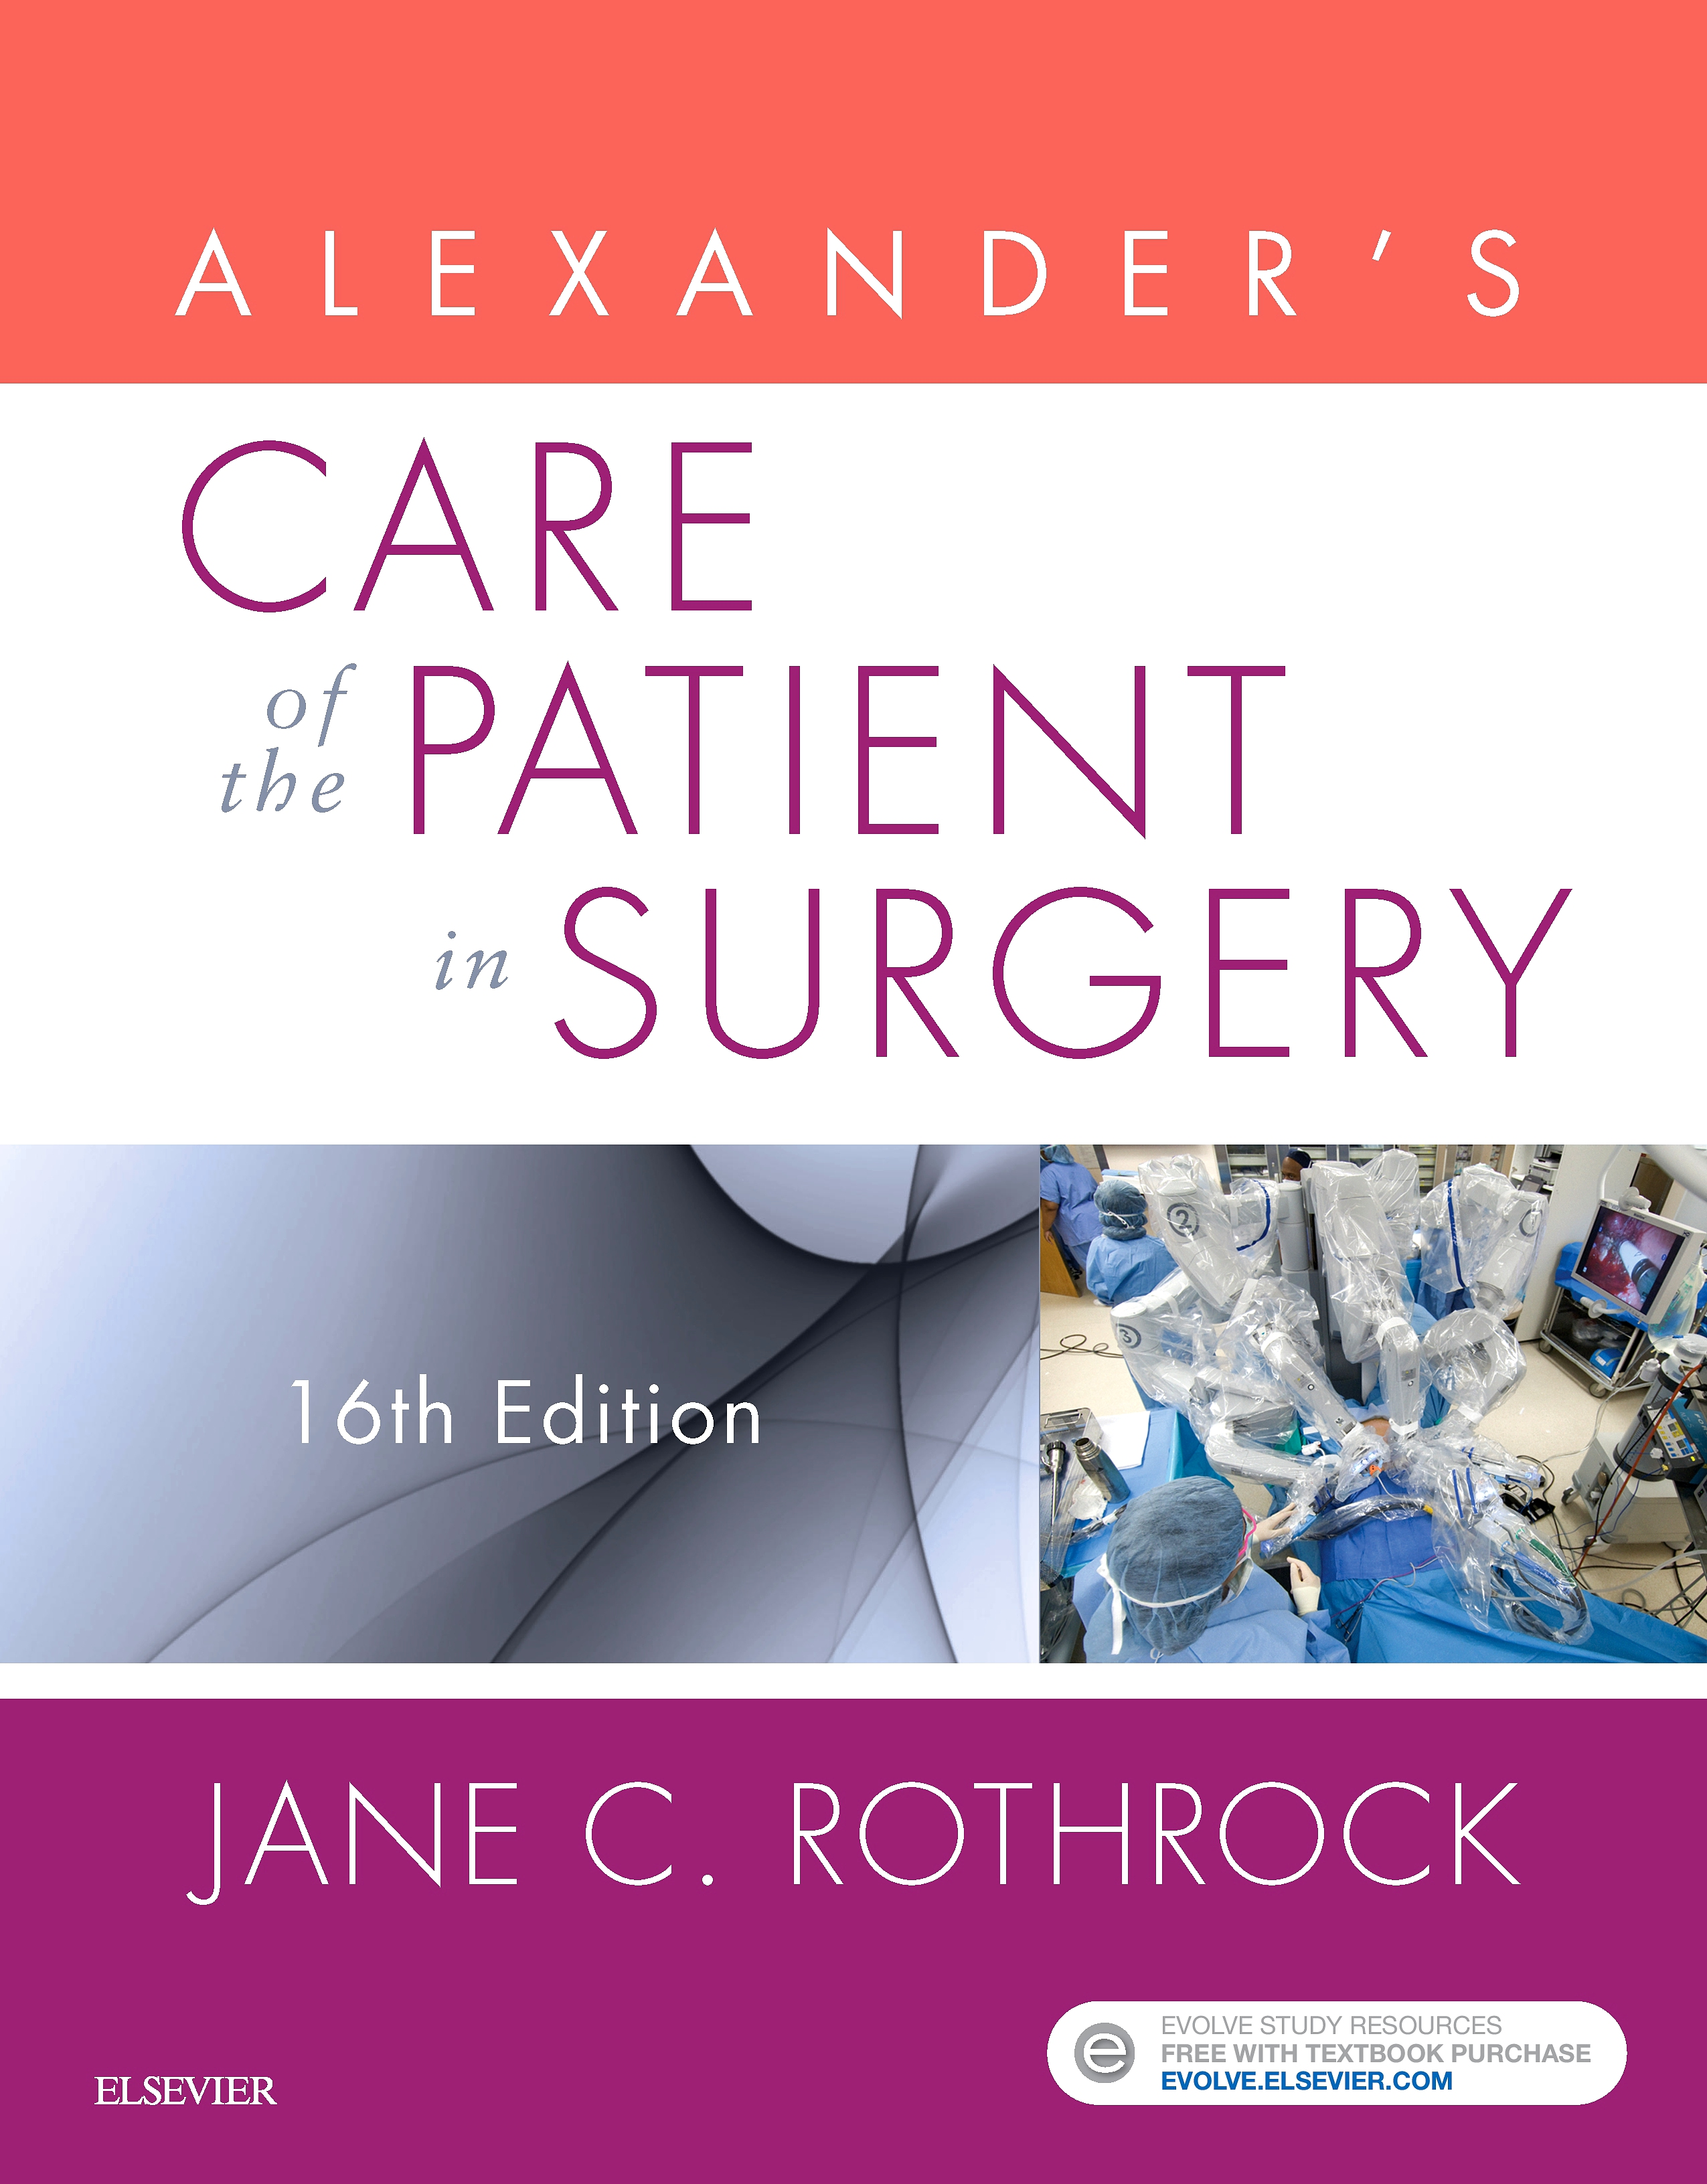 Evolve Resources for Alexander's Care of the Patient in Surgery, 16th Edition